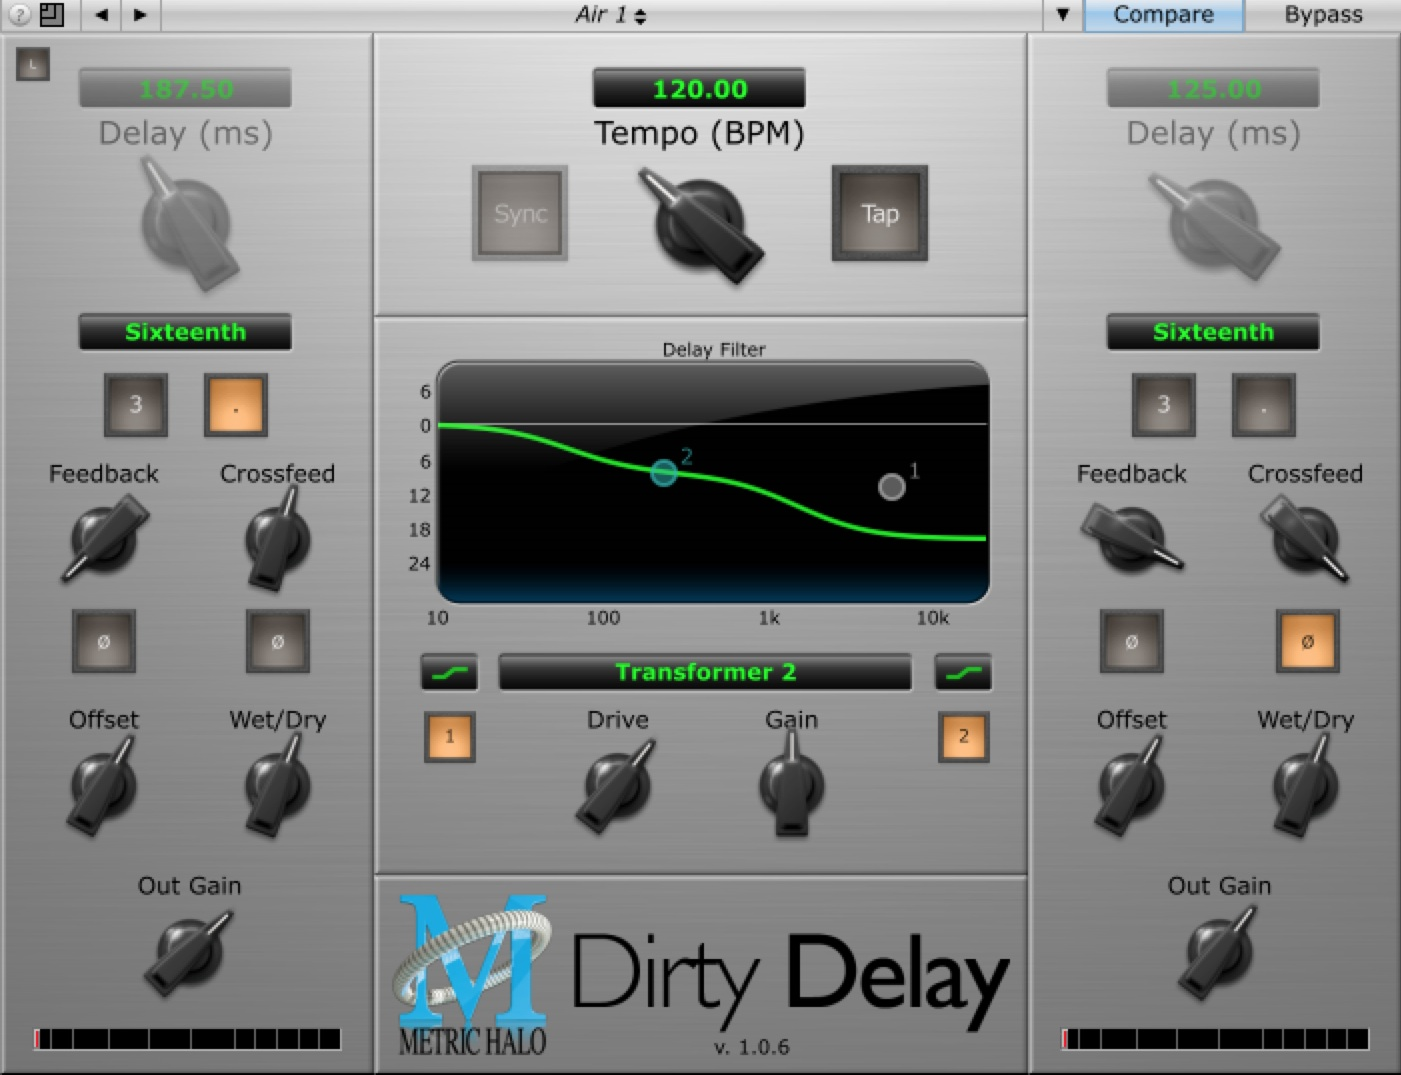 Metric Halo Dirty Delay daw software plug-in processing itb audiofader